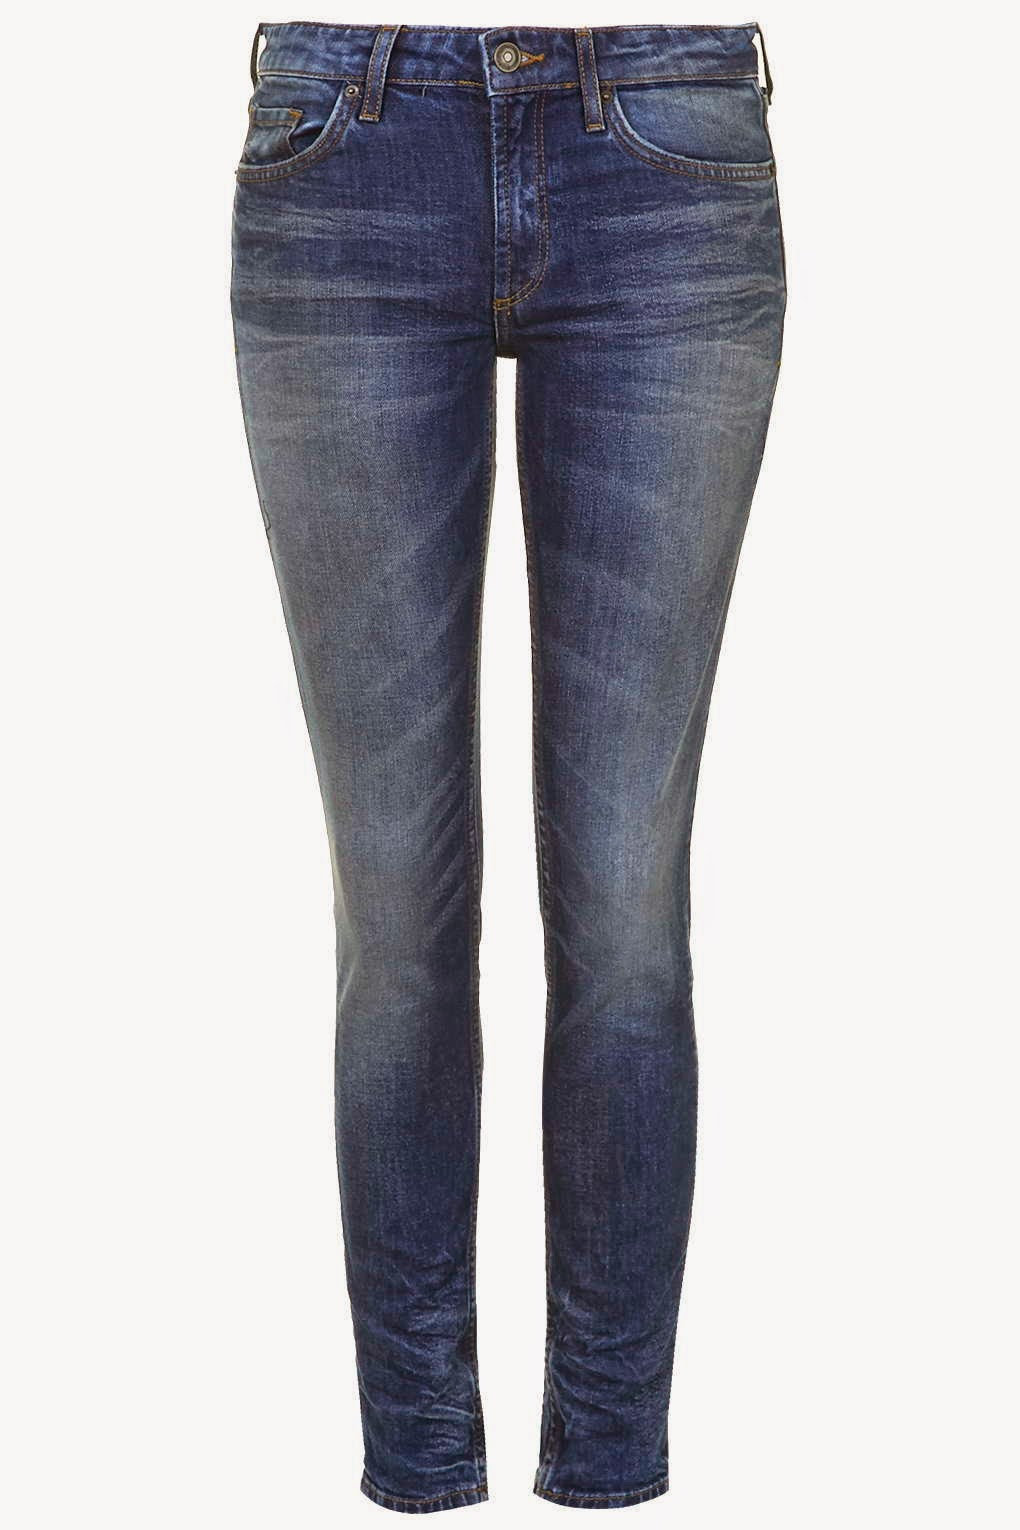 stone washed jeans topshop, baxter jeans stone,